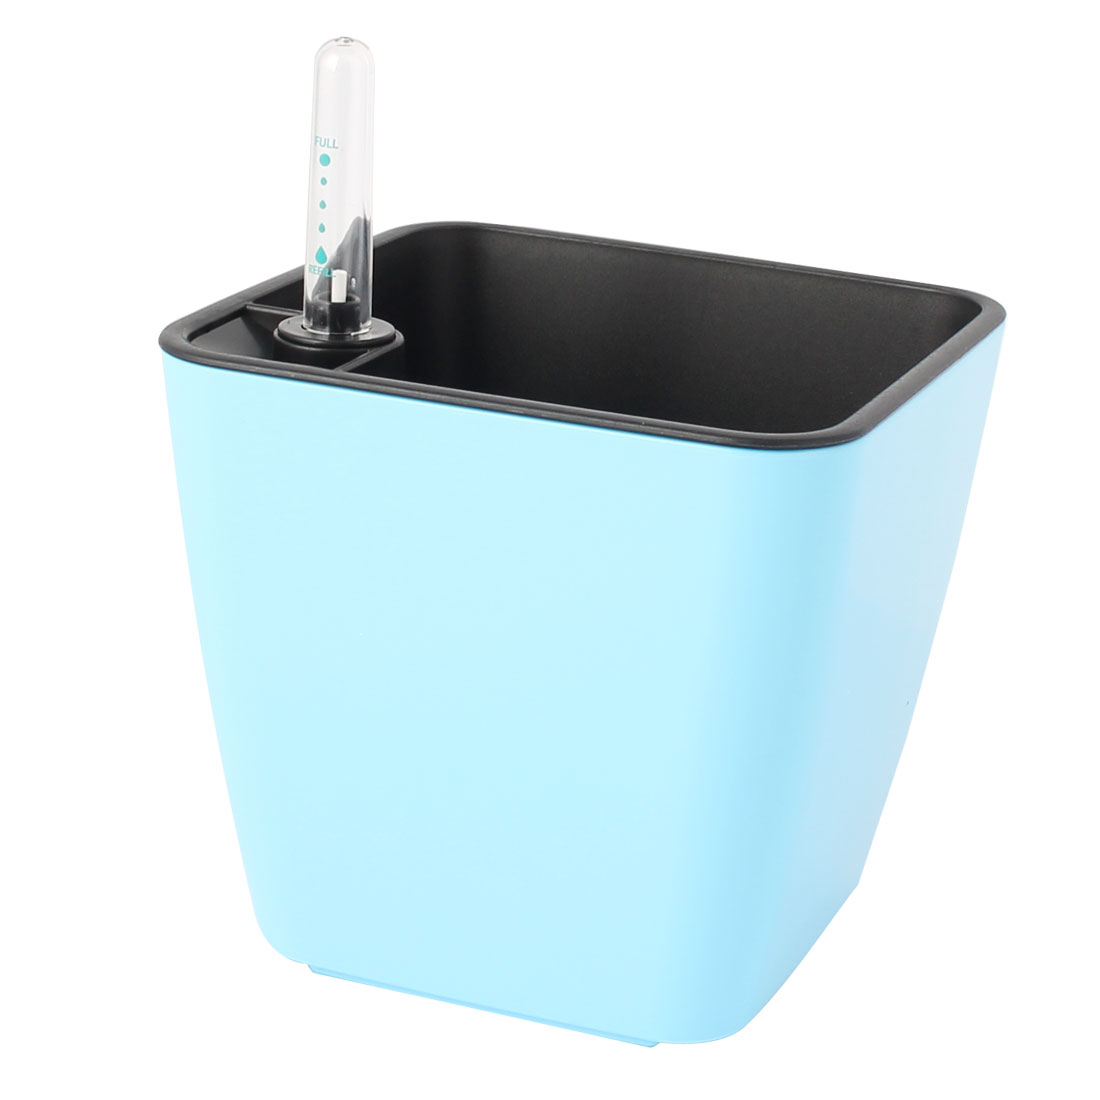 Office Home Plastic Self Watering Planter Pot Light Blue w Water Level Indicator